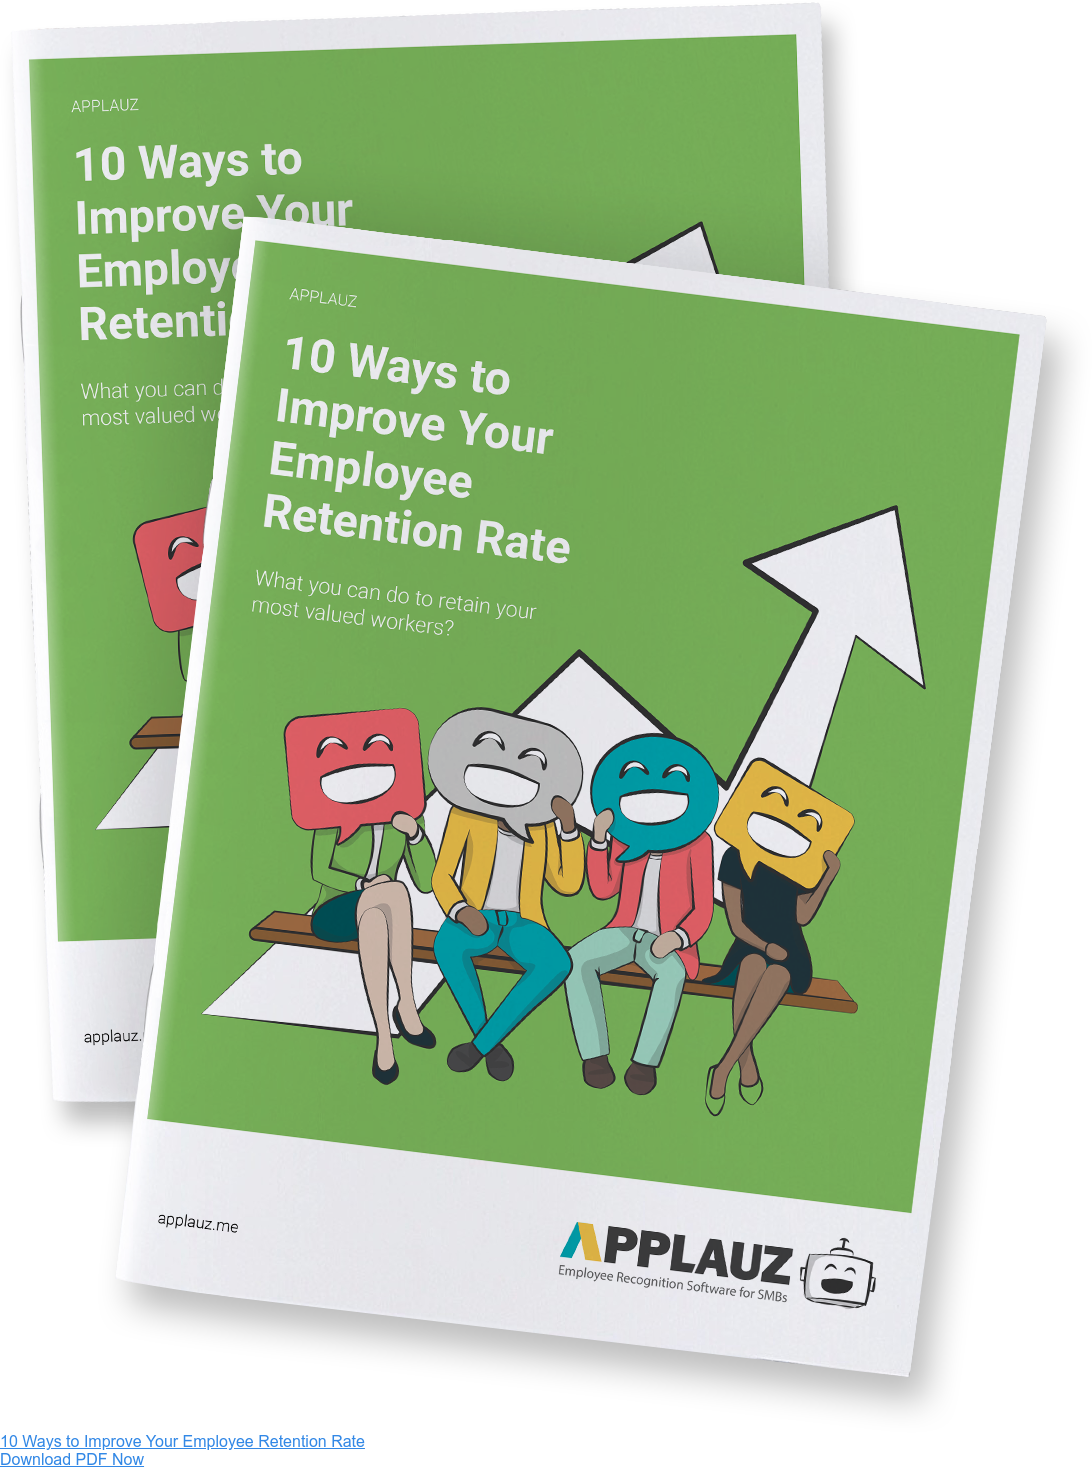 10 Ways to Improve Your Employee Retention Rate Download PDF Now